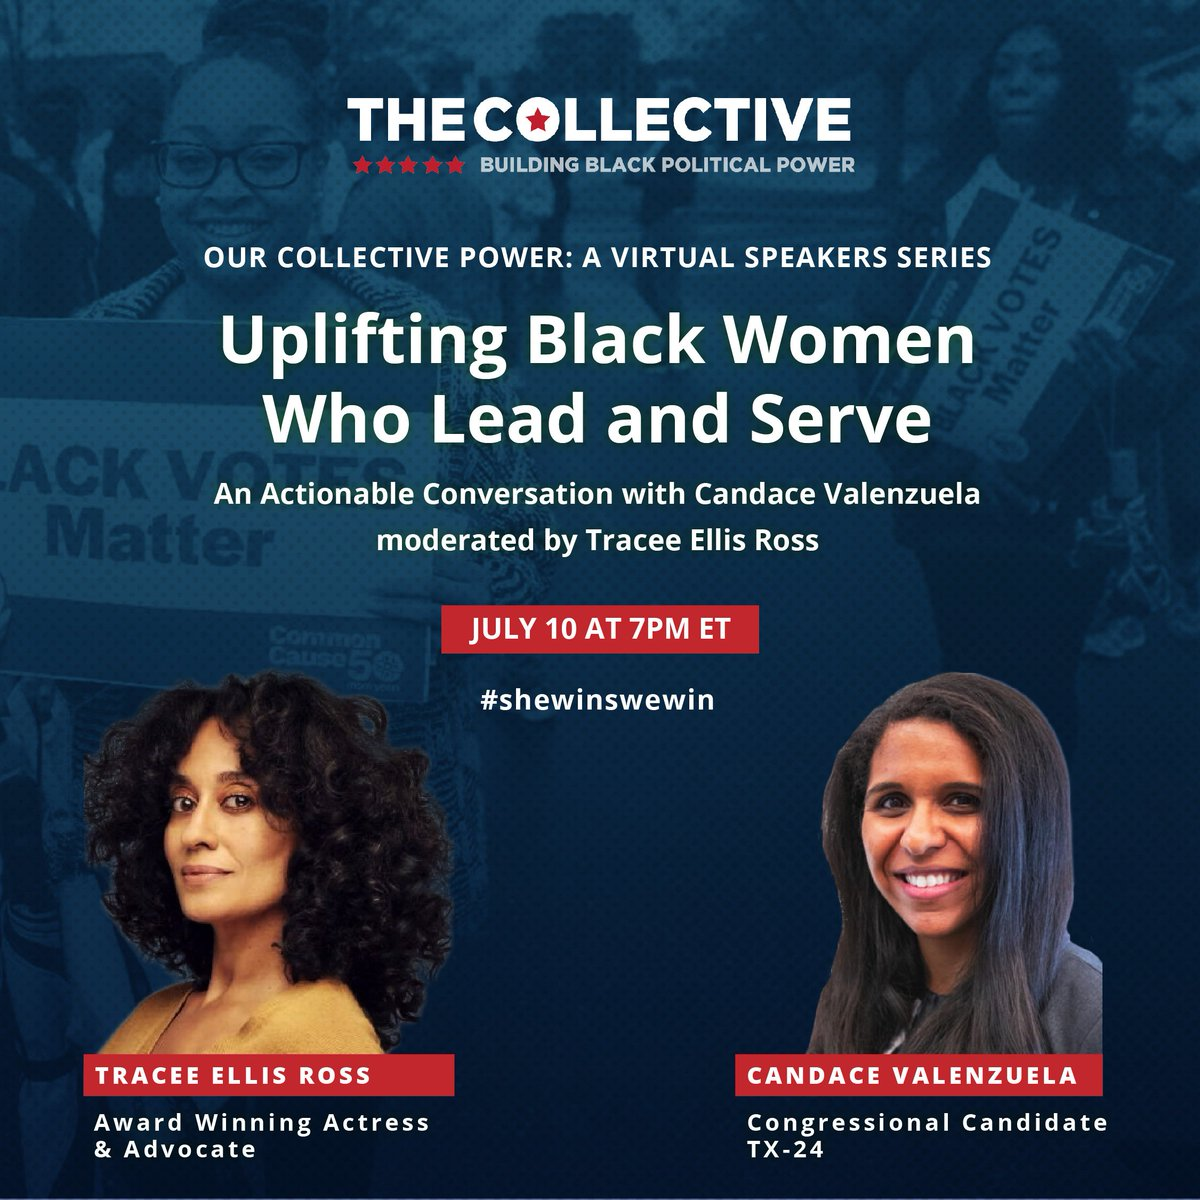 Looking forward to watching this in a couple of hours. Got a chance to meet @candacefor24 It was refreshing to hear her speak. She was very real. She feels like a woman of the people, thats for the people. #shewinswewin